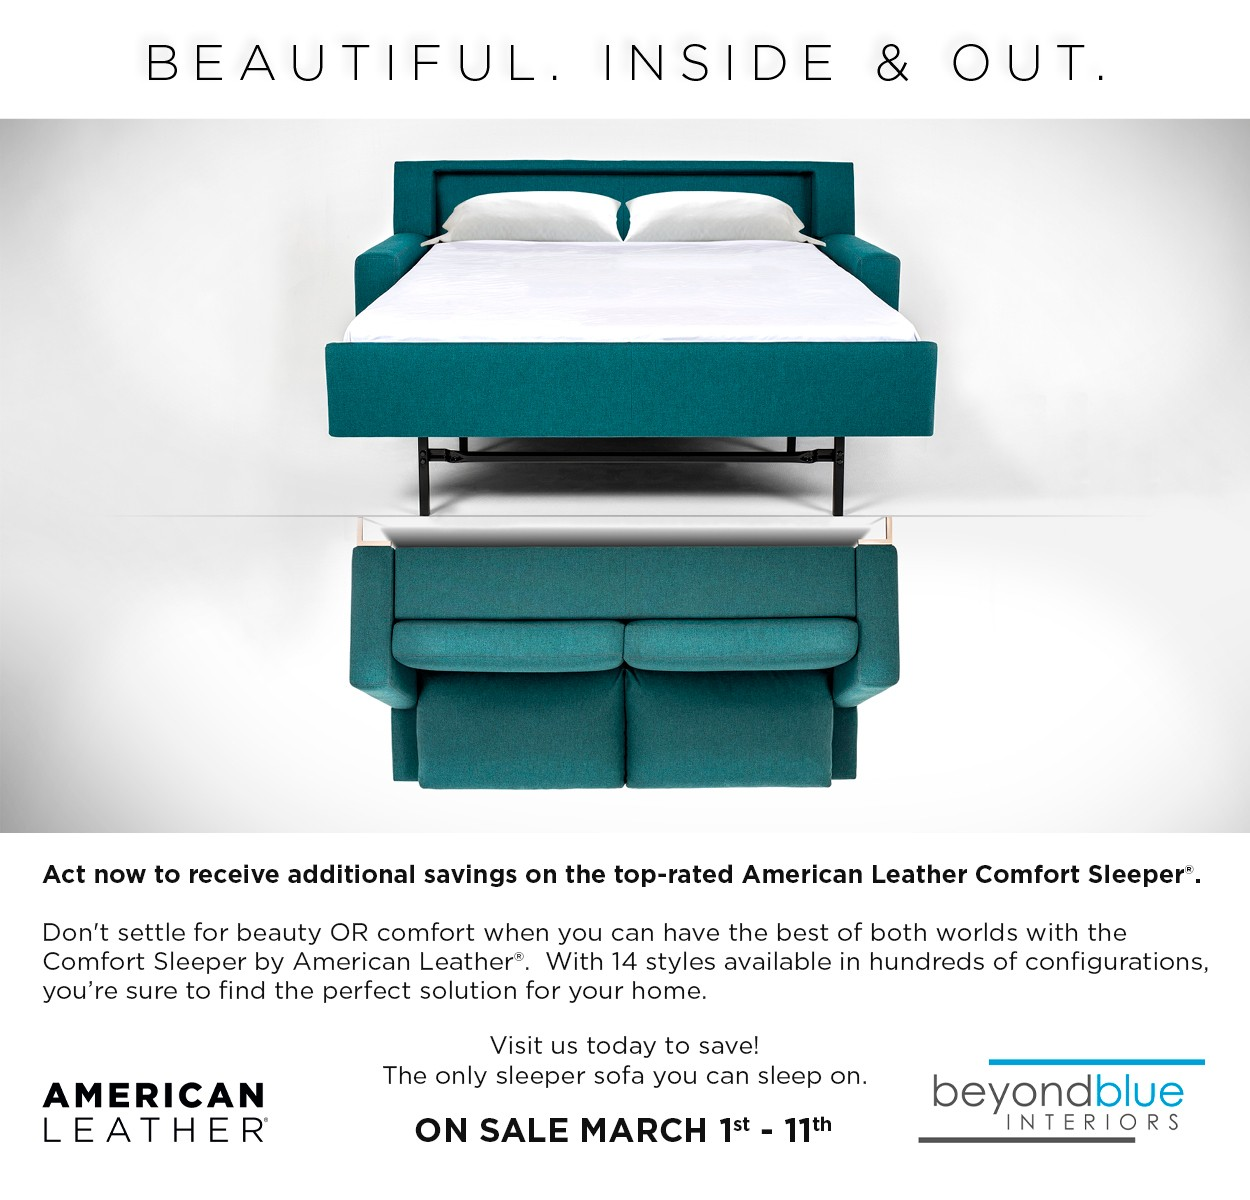 American Leather Comfort Sleeper sale Spring 2019